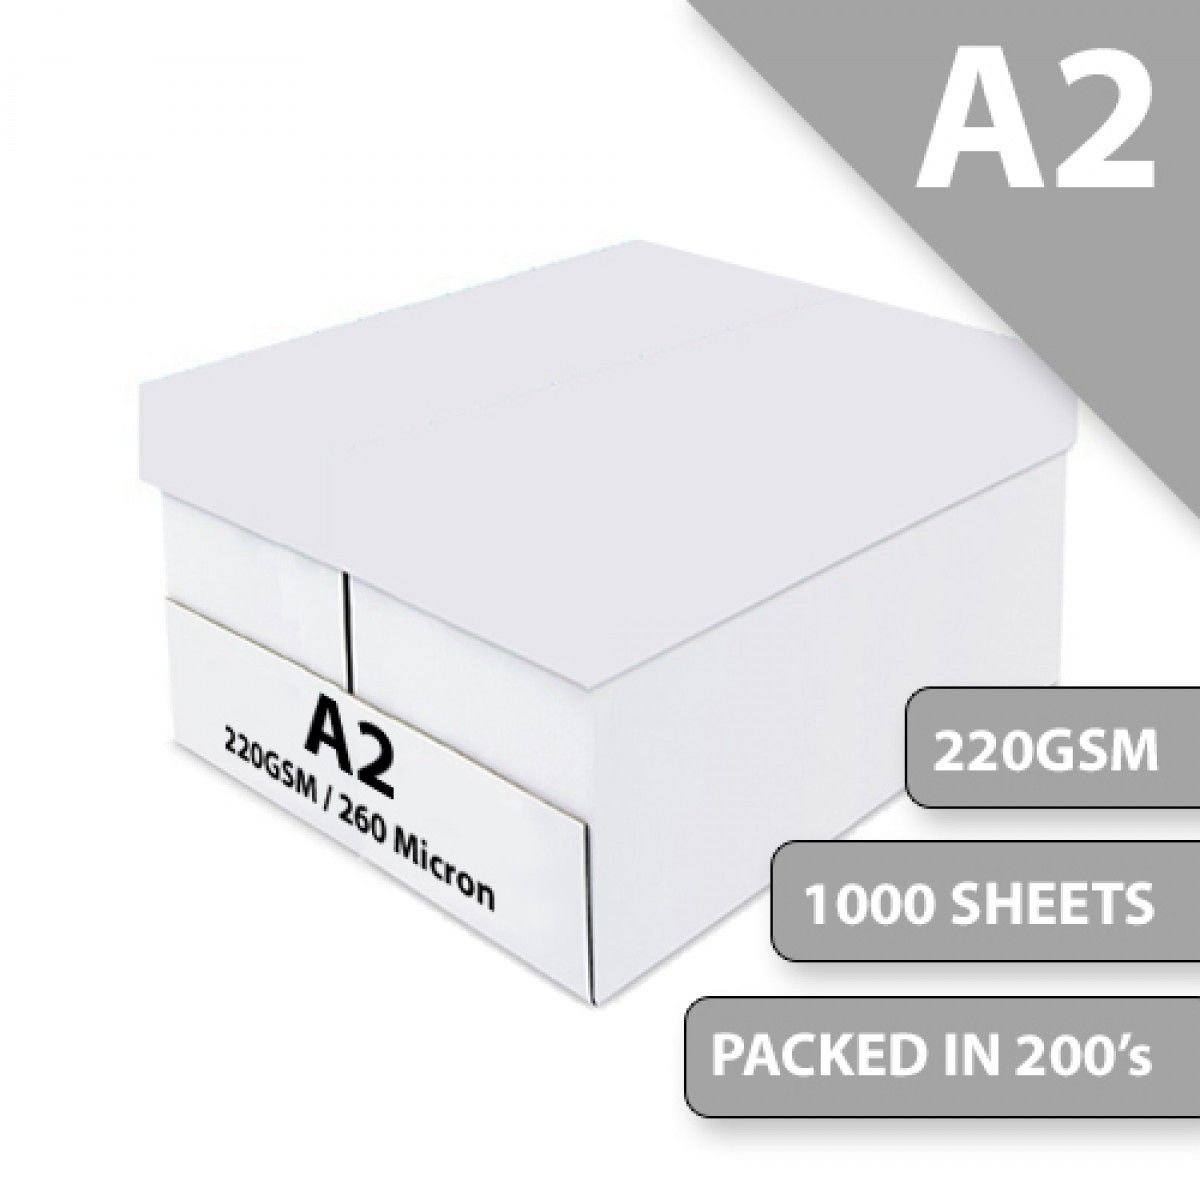 A2 White Card 220GSM Box Pack Size : 1000 Sheets   Office